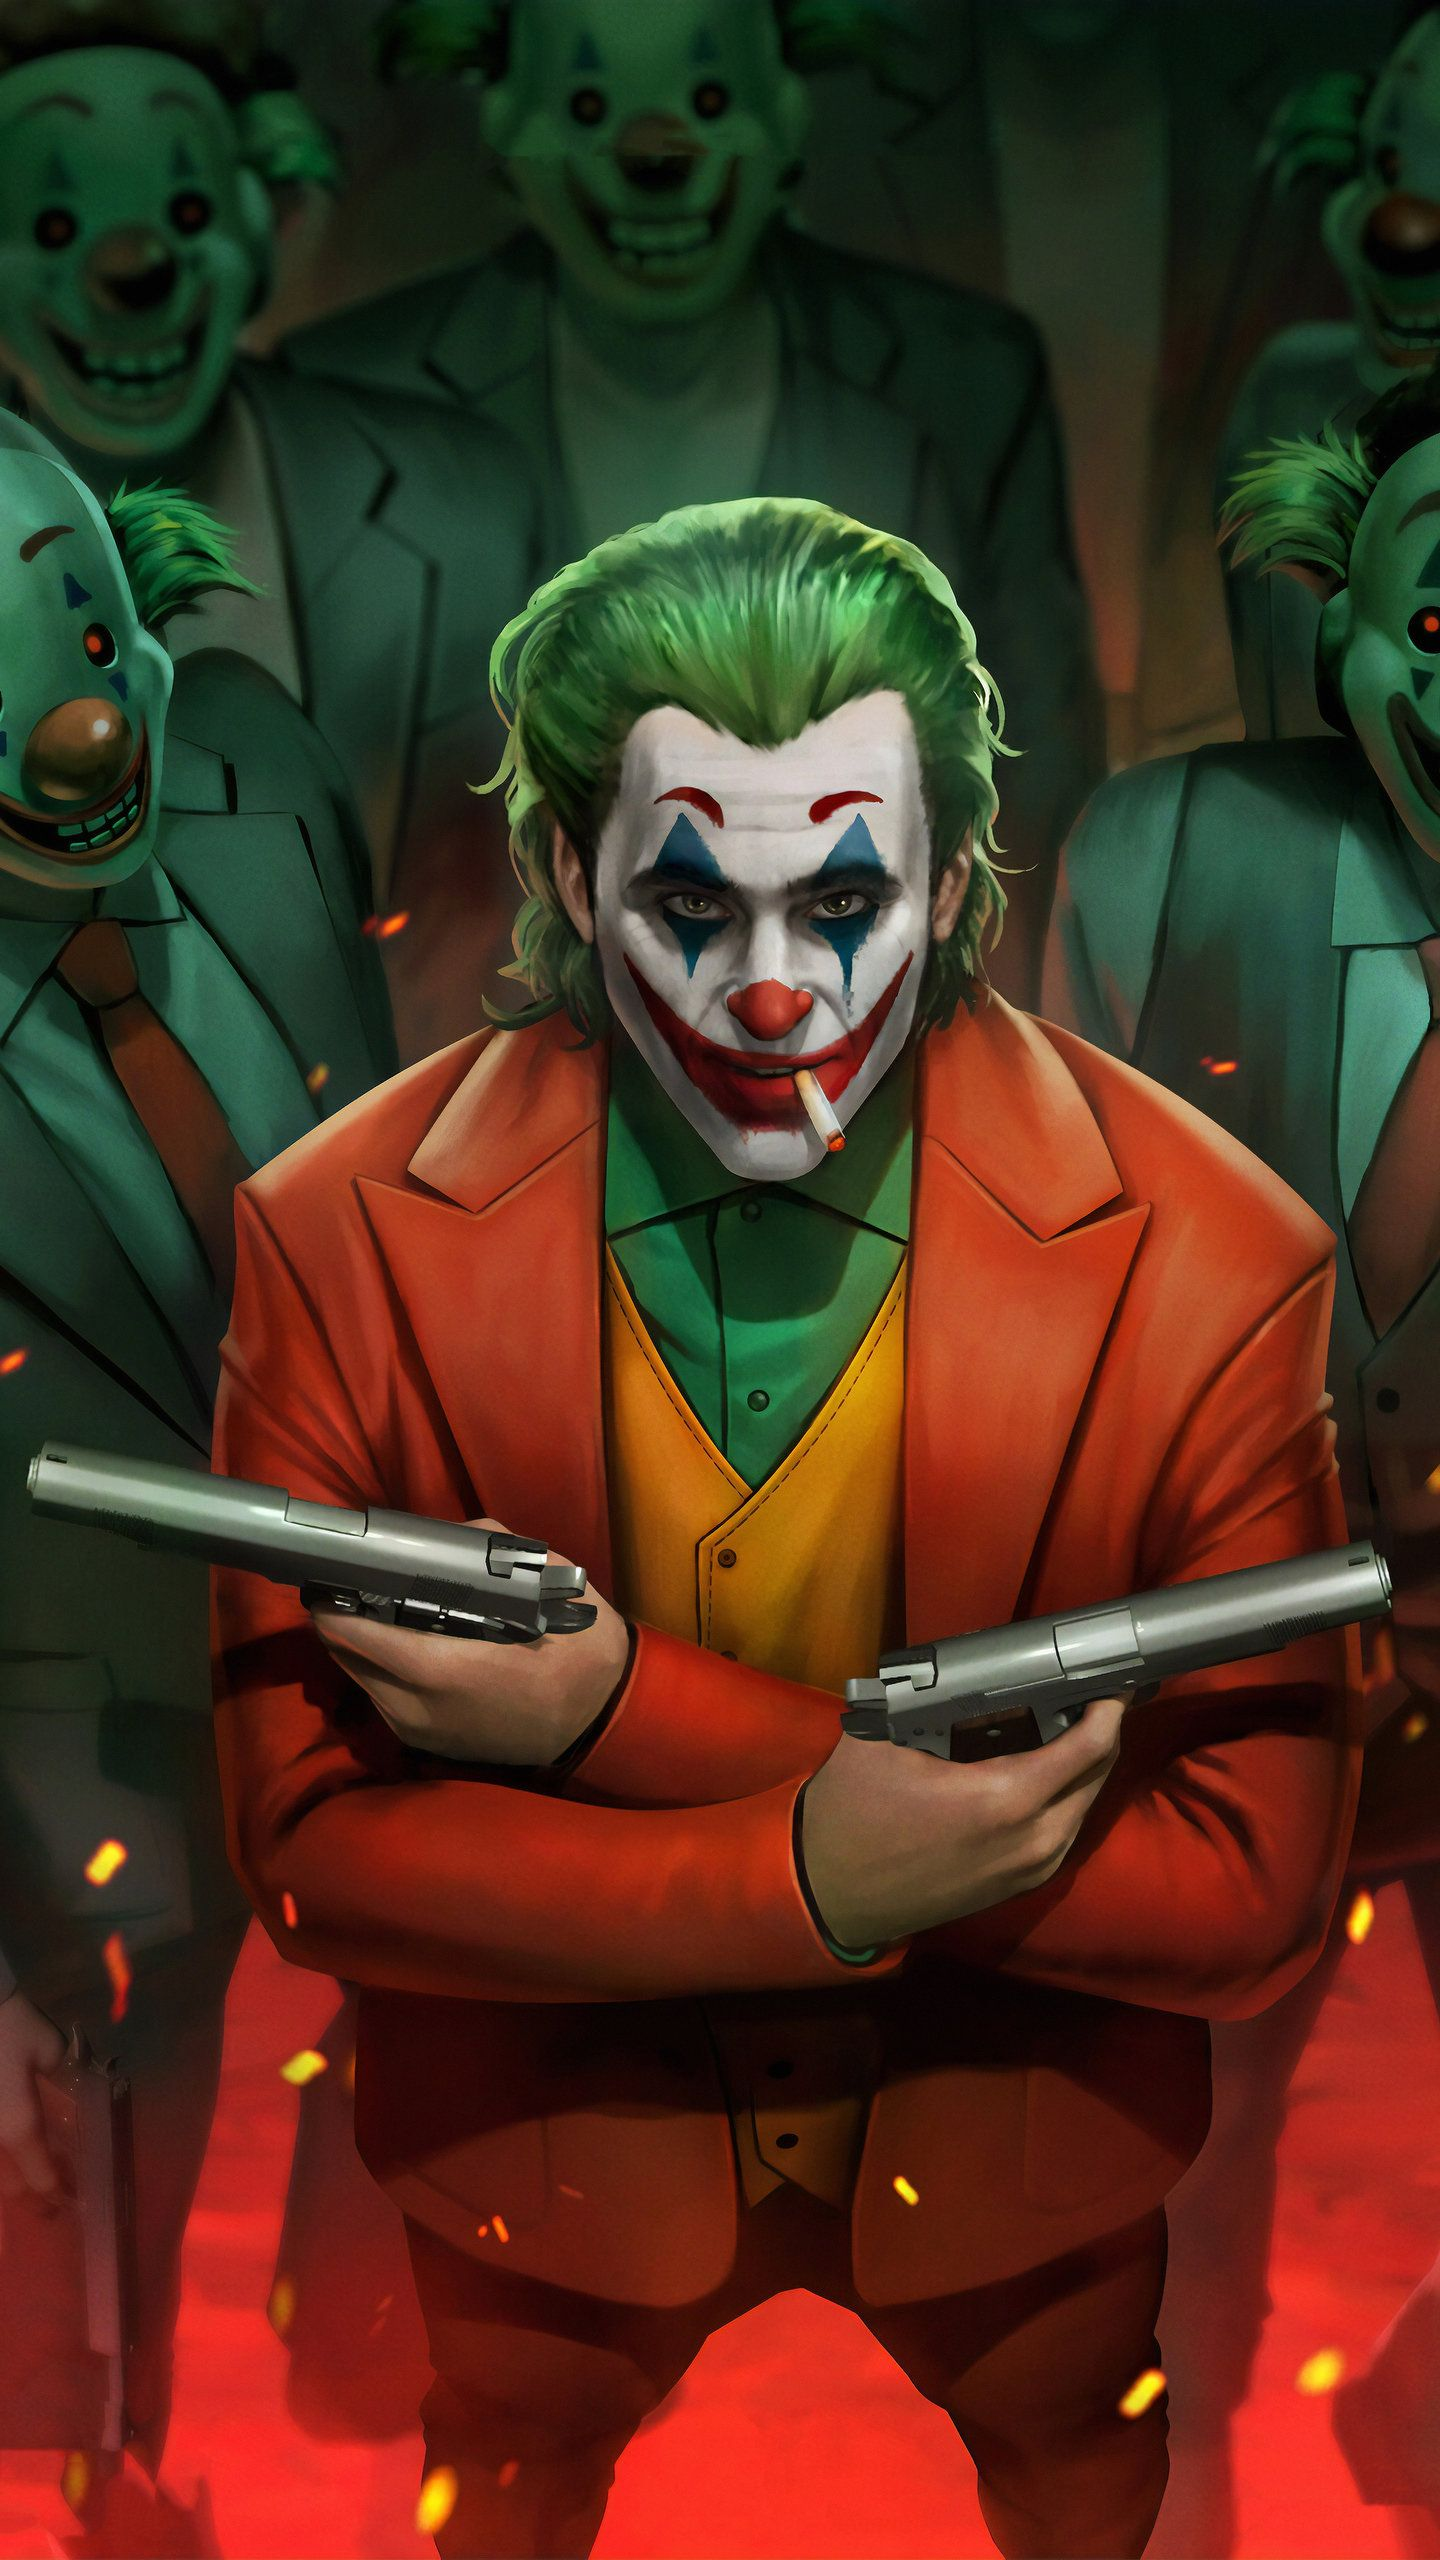 Joker Movie Art 4k Hd Wallpaper 1440x2560 Seni Gelap Sejarah